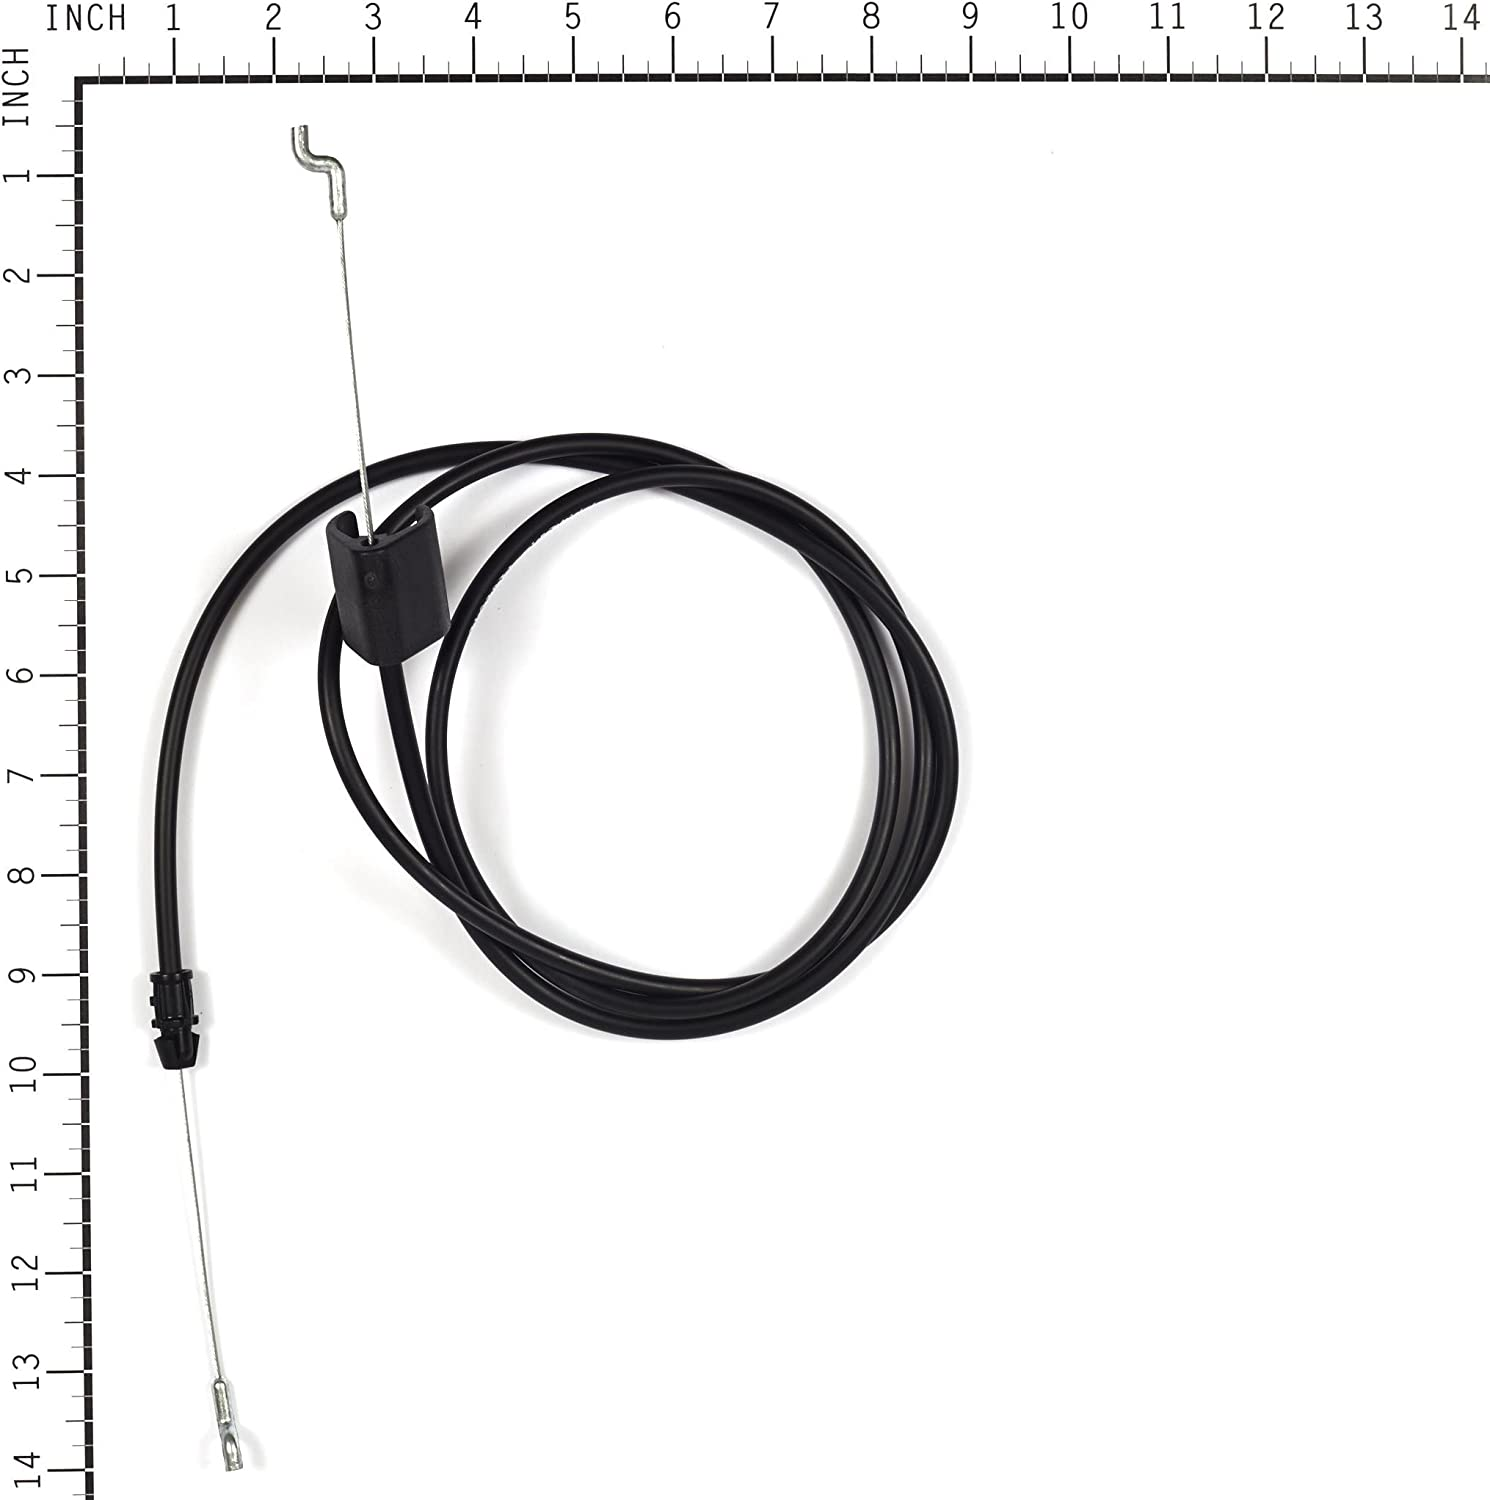 Briggs /& Stratton OEM 7101399YP replacement cable 21 wbm bail